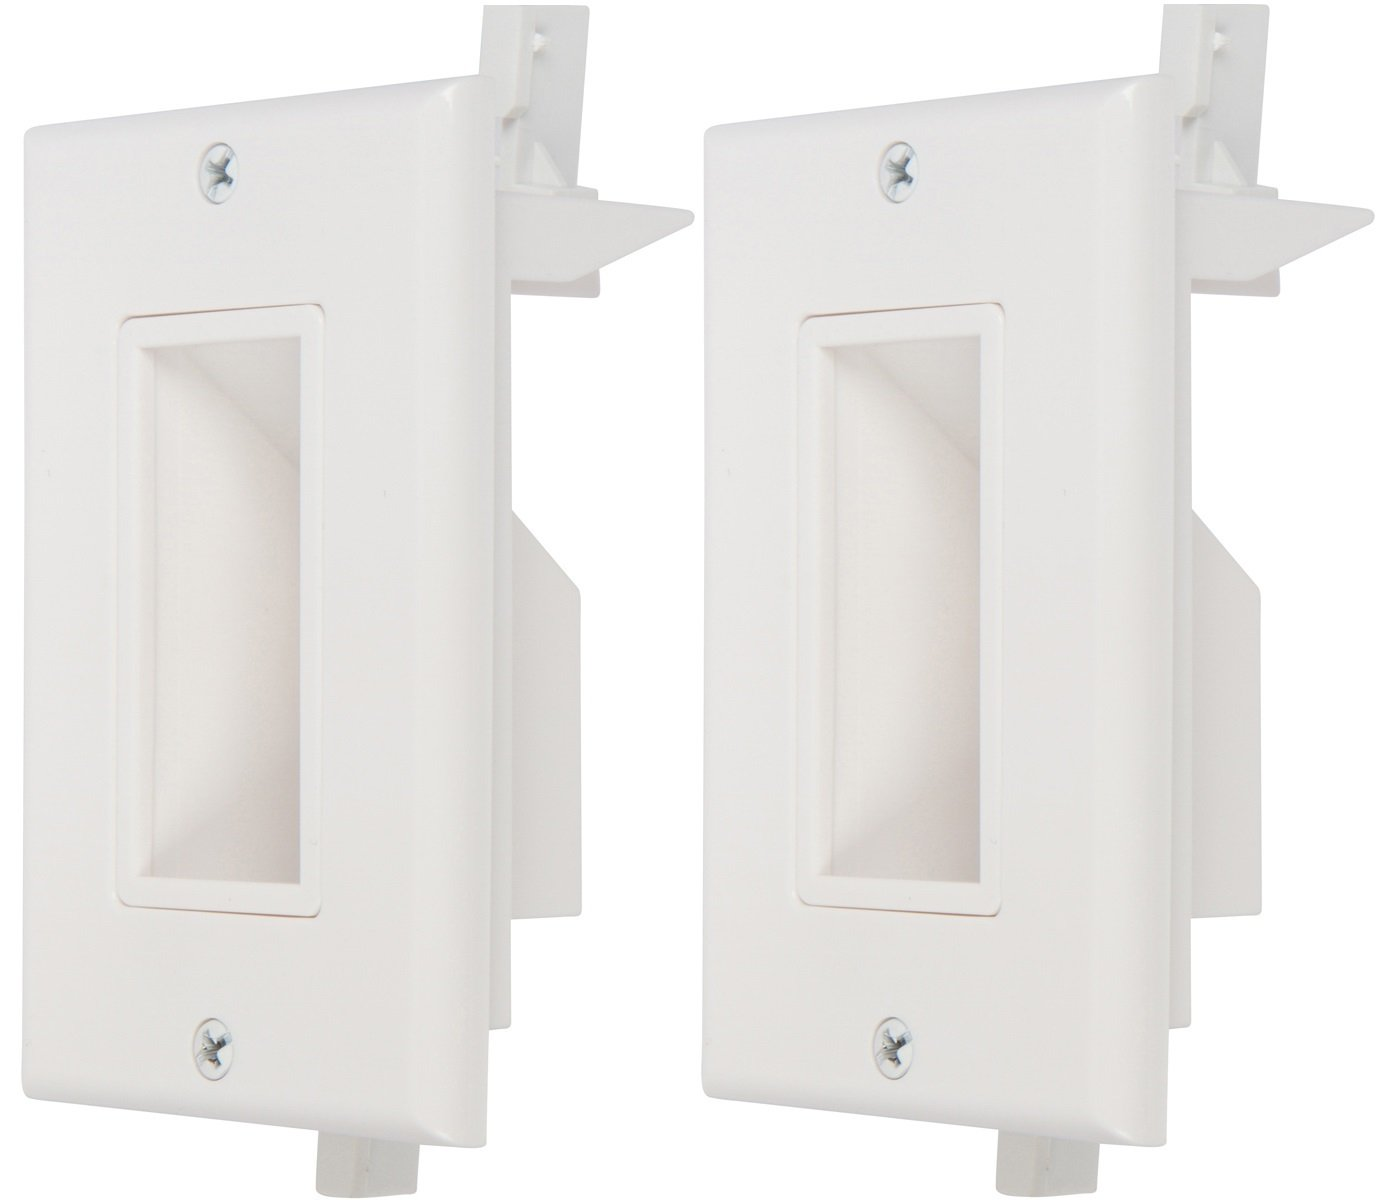 Buyer's Point Recessed Low Voltage Cable Wall Plate, Easy to Mount Outlet To Hide & Pass Tech Power Wires Through For TV, Video, Audio Amplifiers & Other Electronic Media